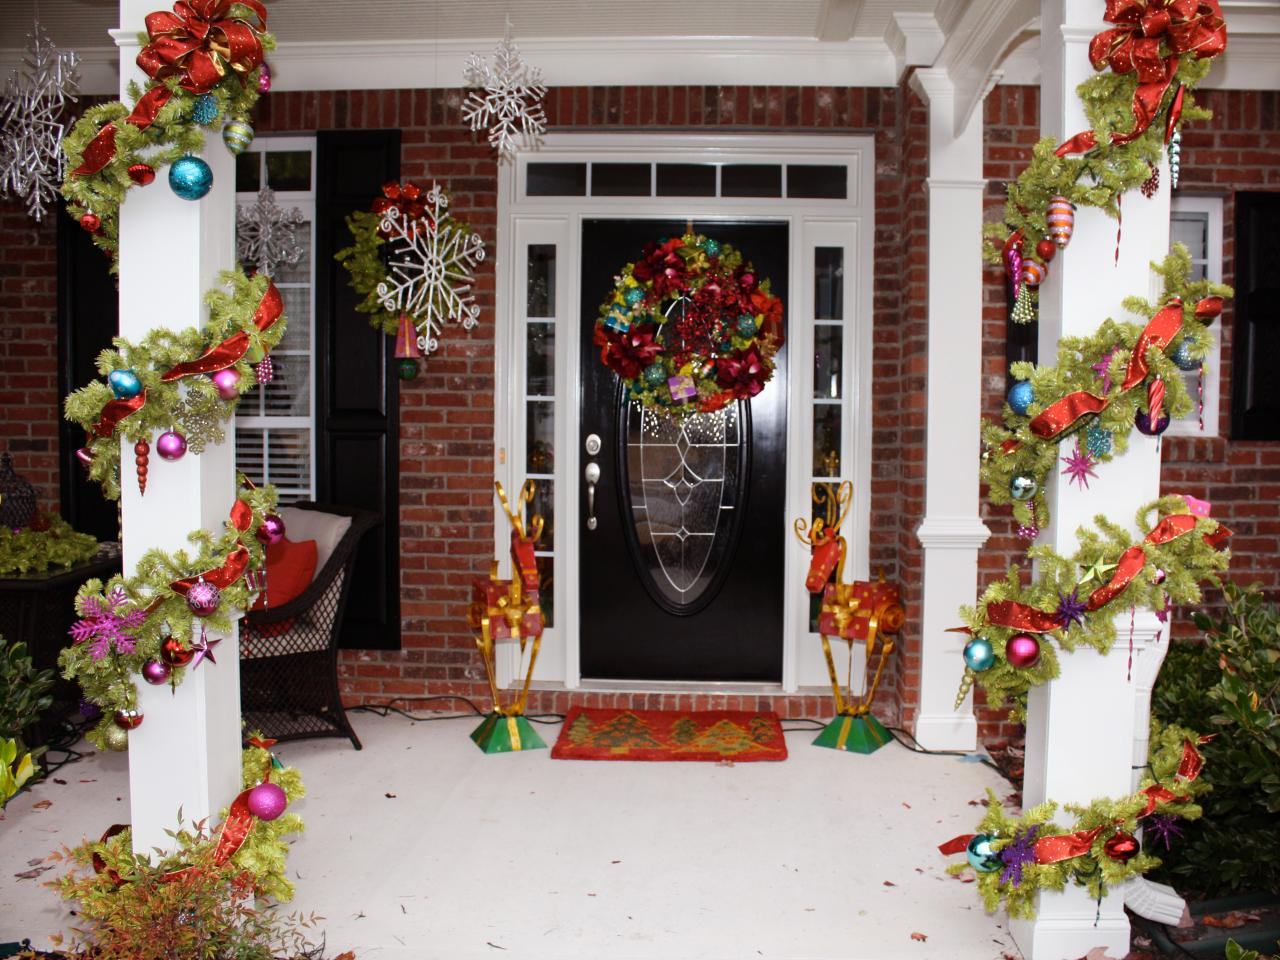 Decorating Ideas > Stunning Outdoor Christmas Displays  Interior Design  ~ 232629_Outdoor Christmas Decorating Ideas Front Porch